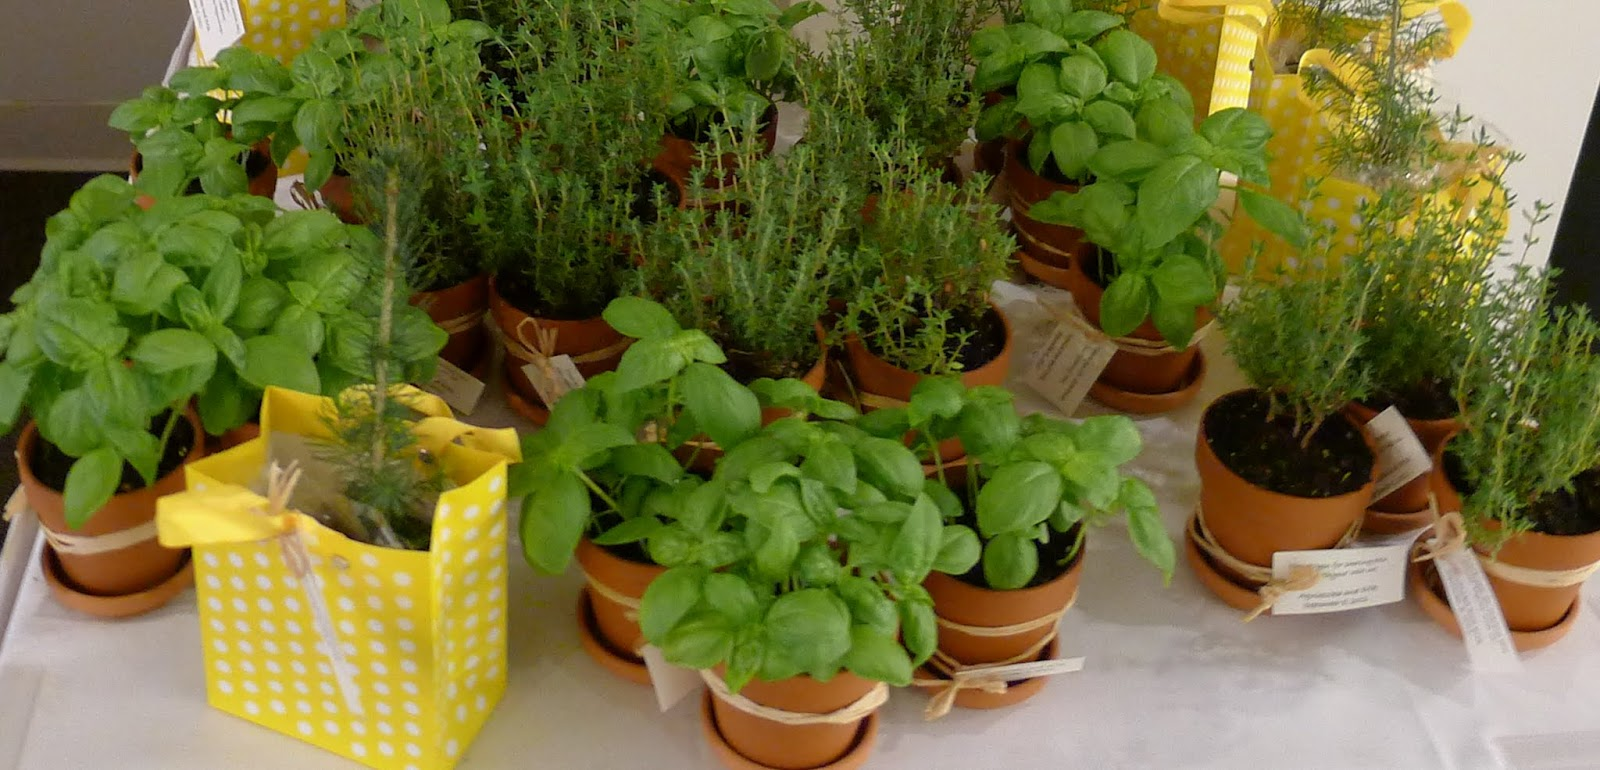 Backyard garden thyme basil spruce tree seedling wedding favors - Aromatic herbs pots multiple benefits ...